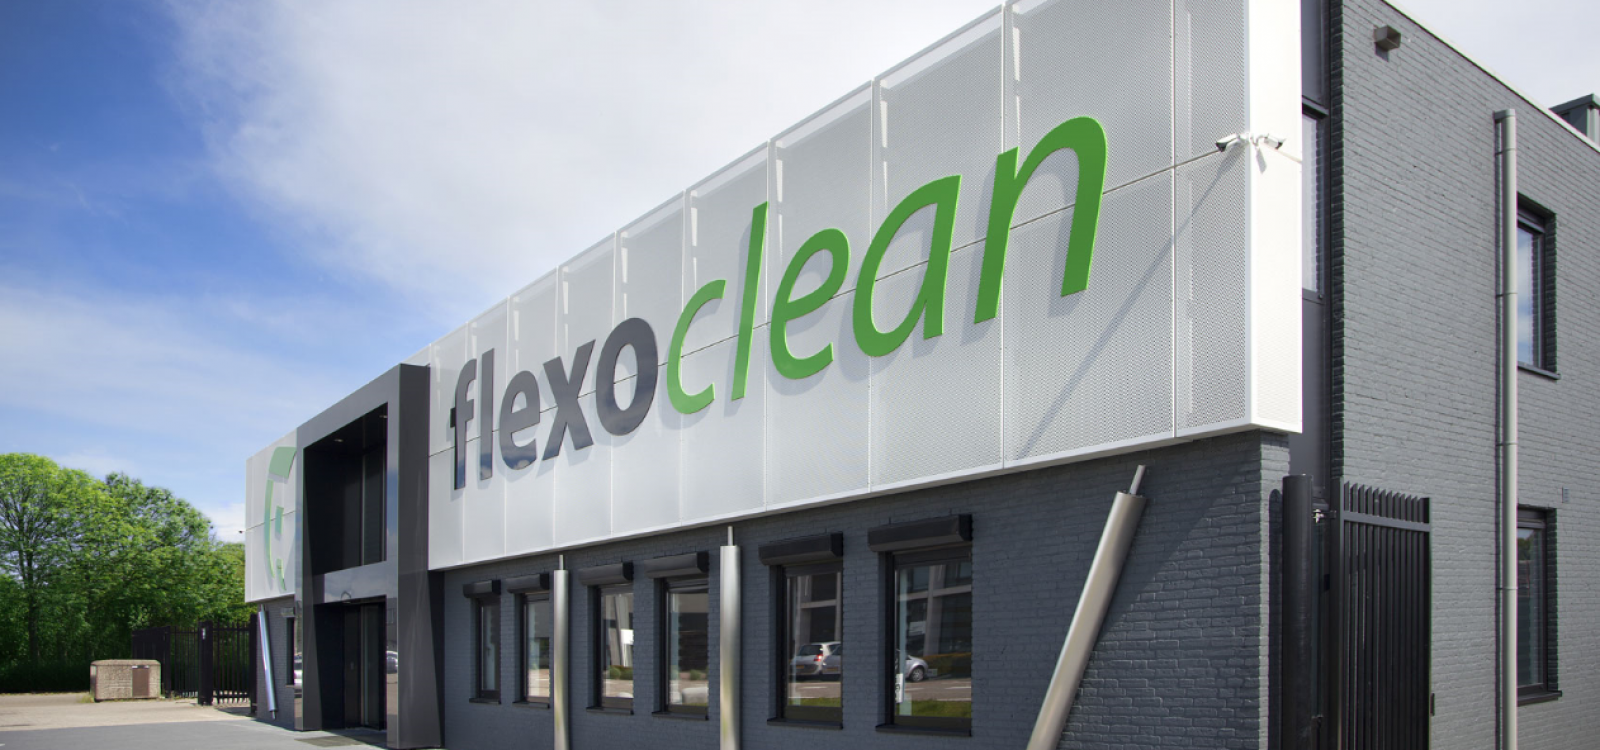 flexoclean gevel geperforeerd